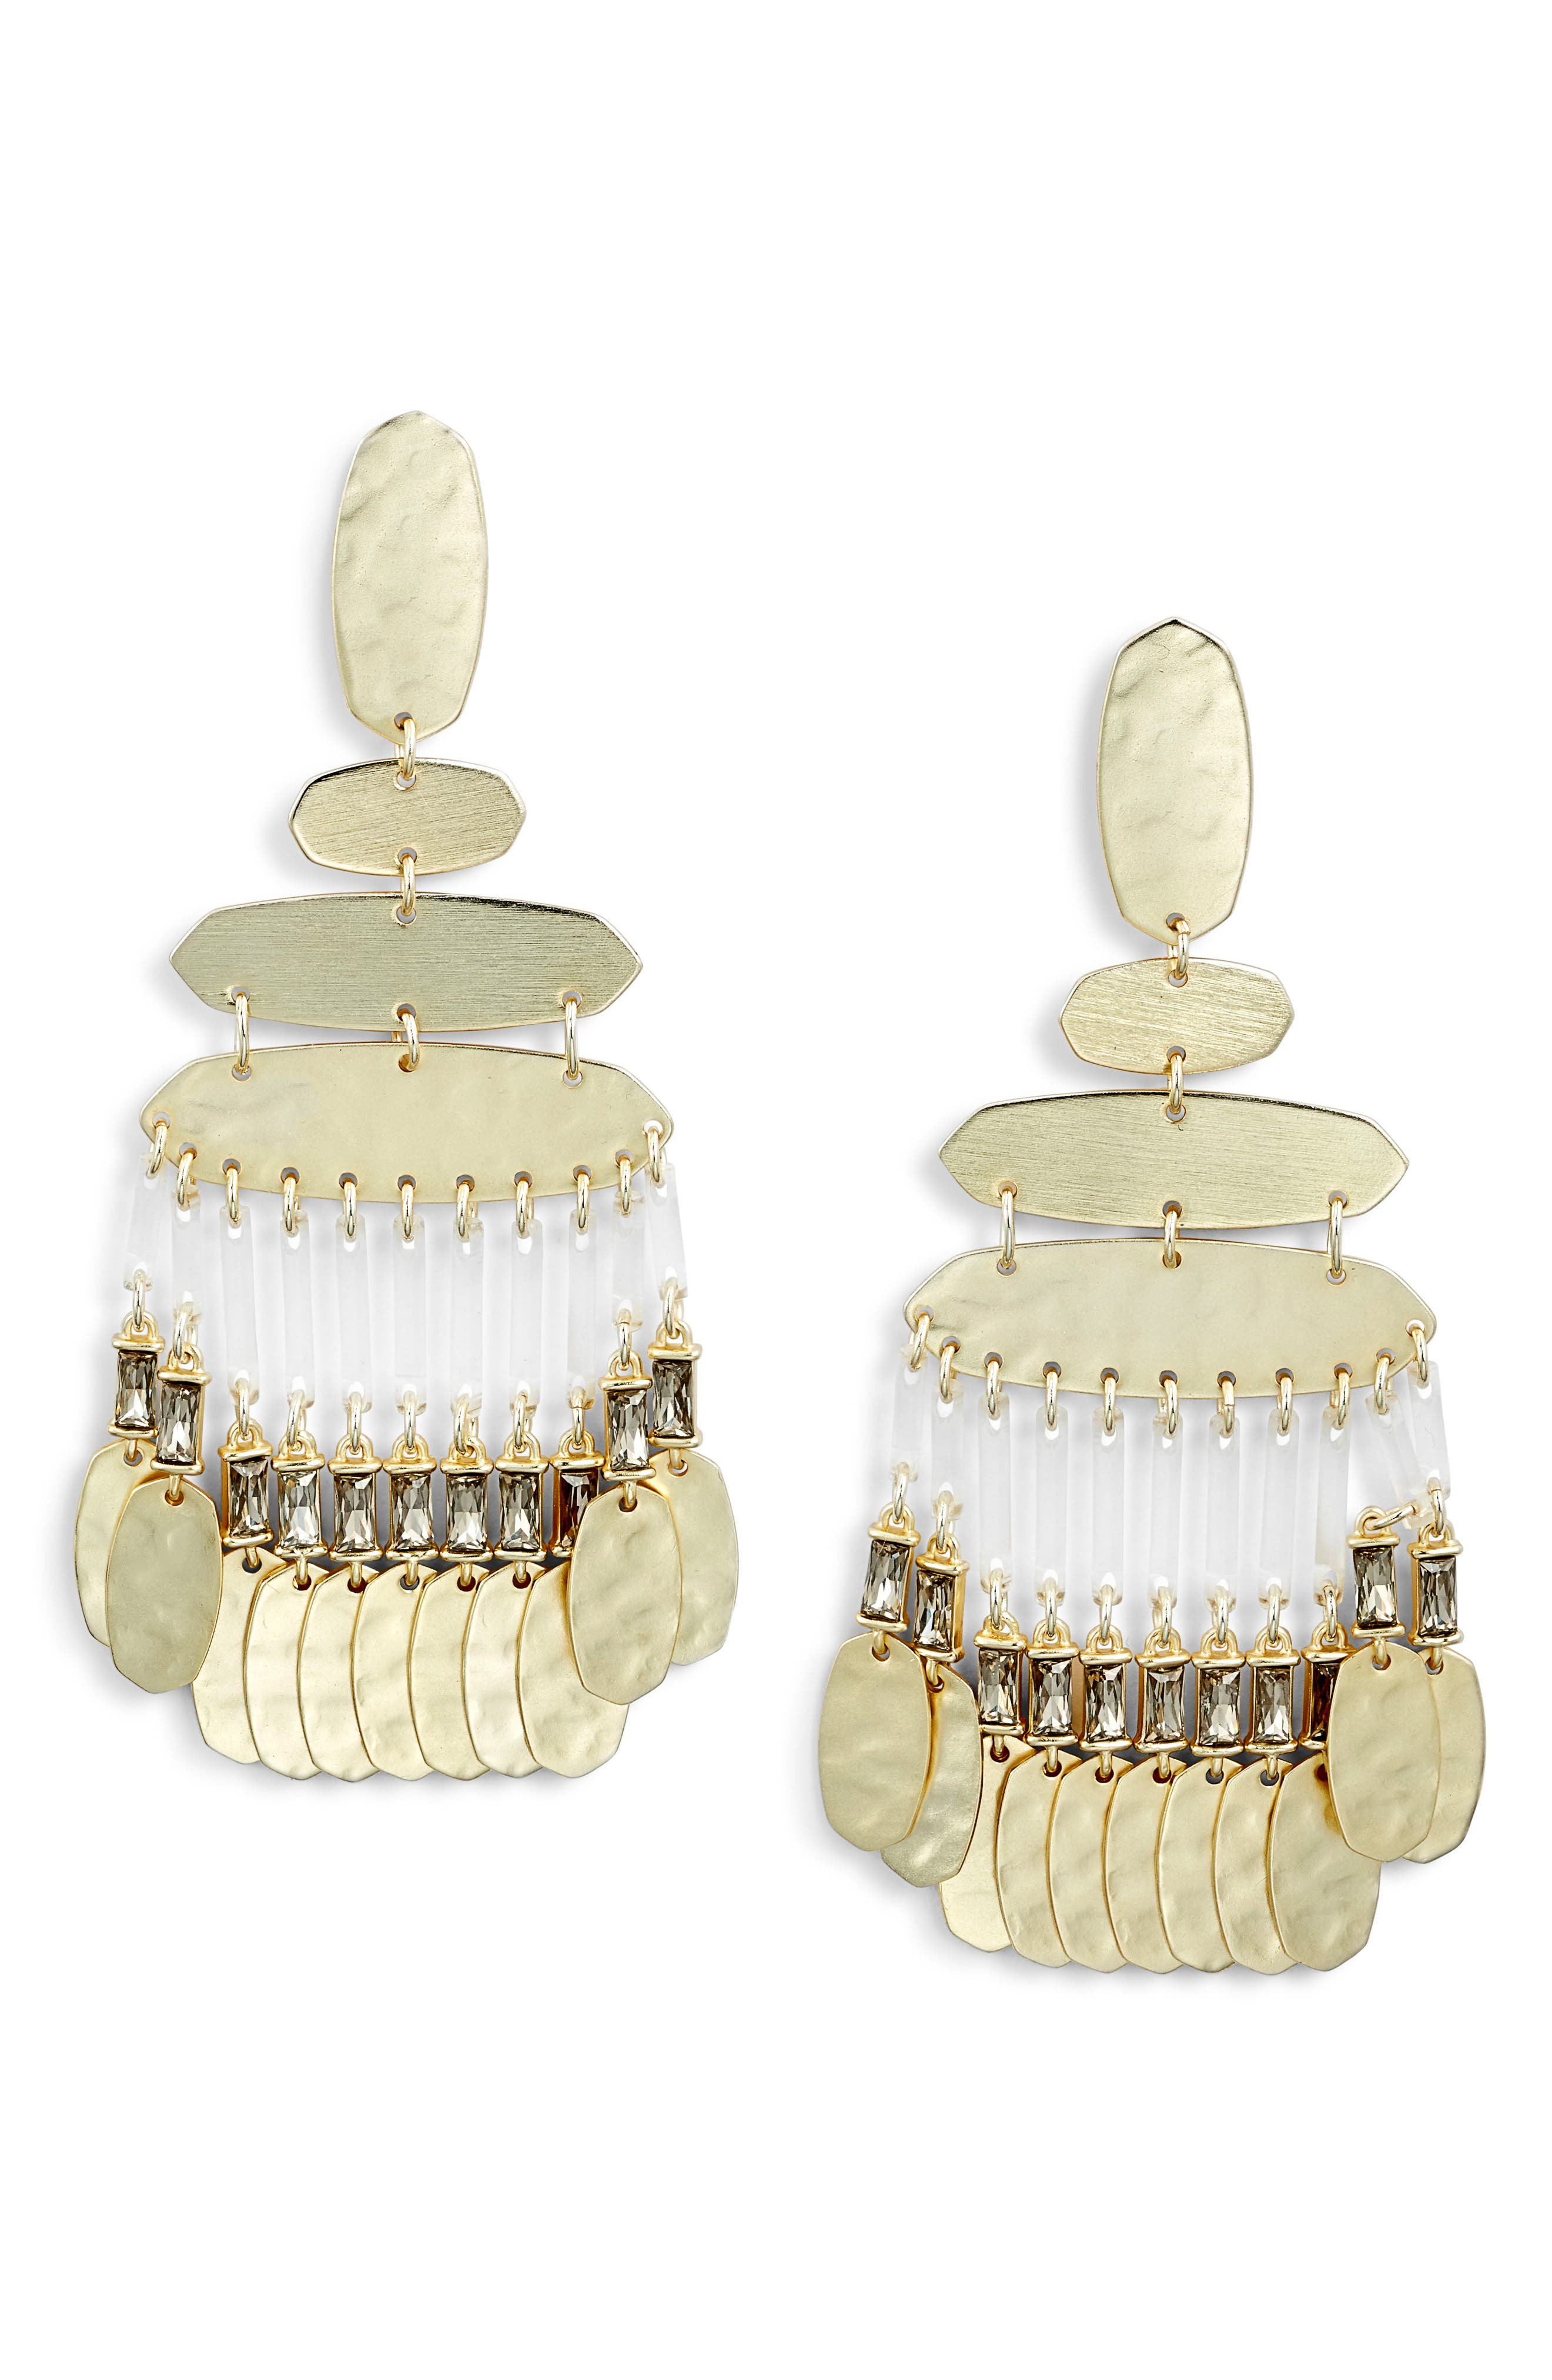 Nicola Large Chandelier Earrings,                         Main,                         color, SMOKY CRYSTAL/ GOLD